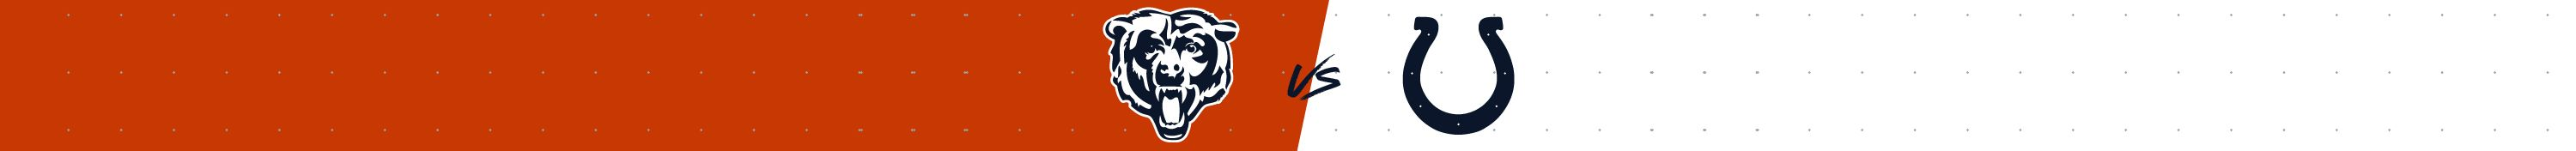 f696f0b9 Schedule | The Official Website of the Chicago Bears